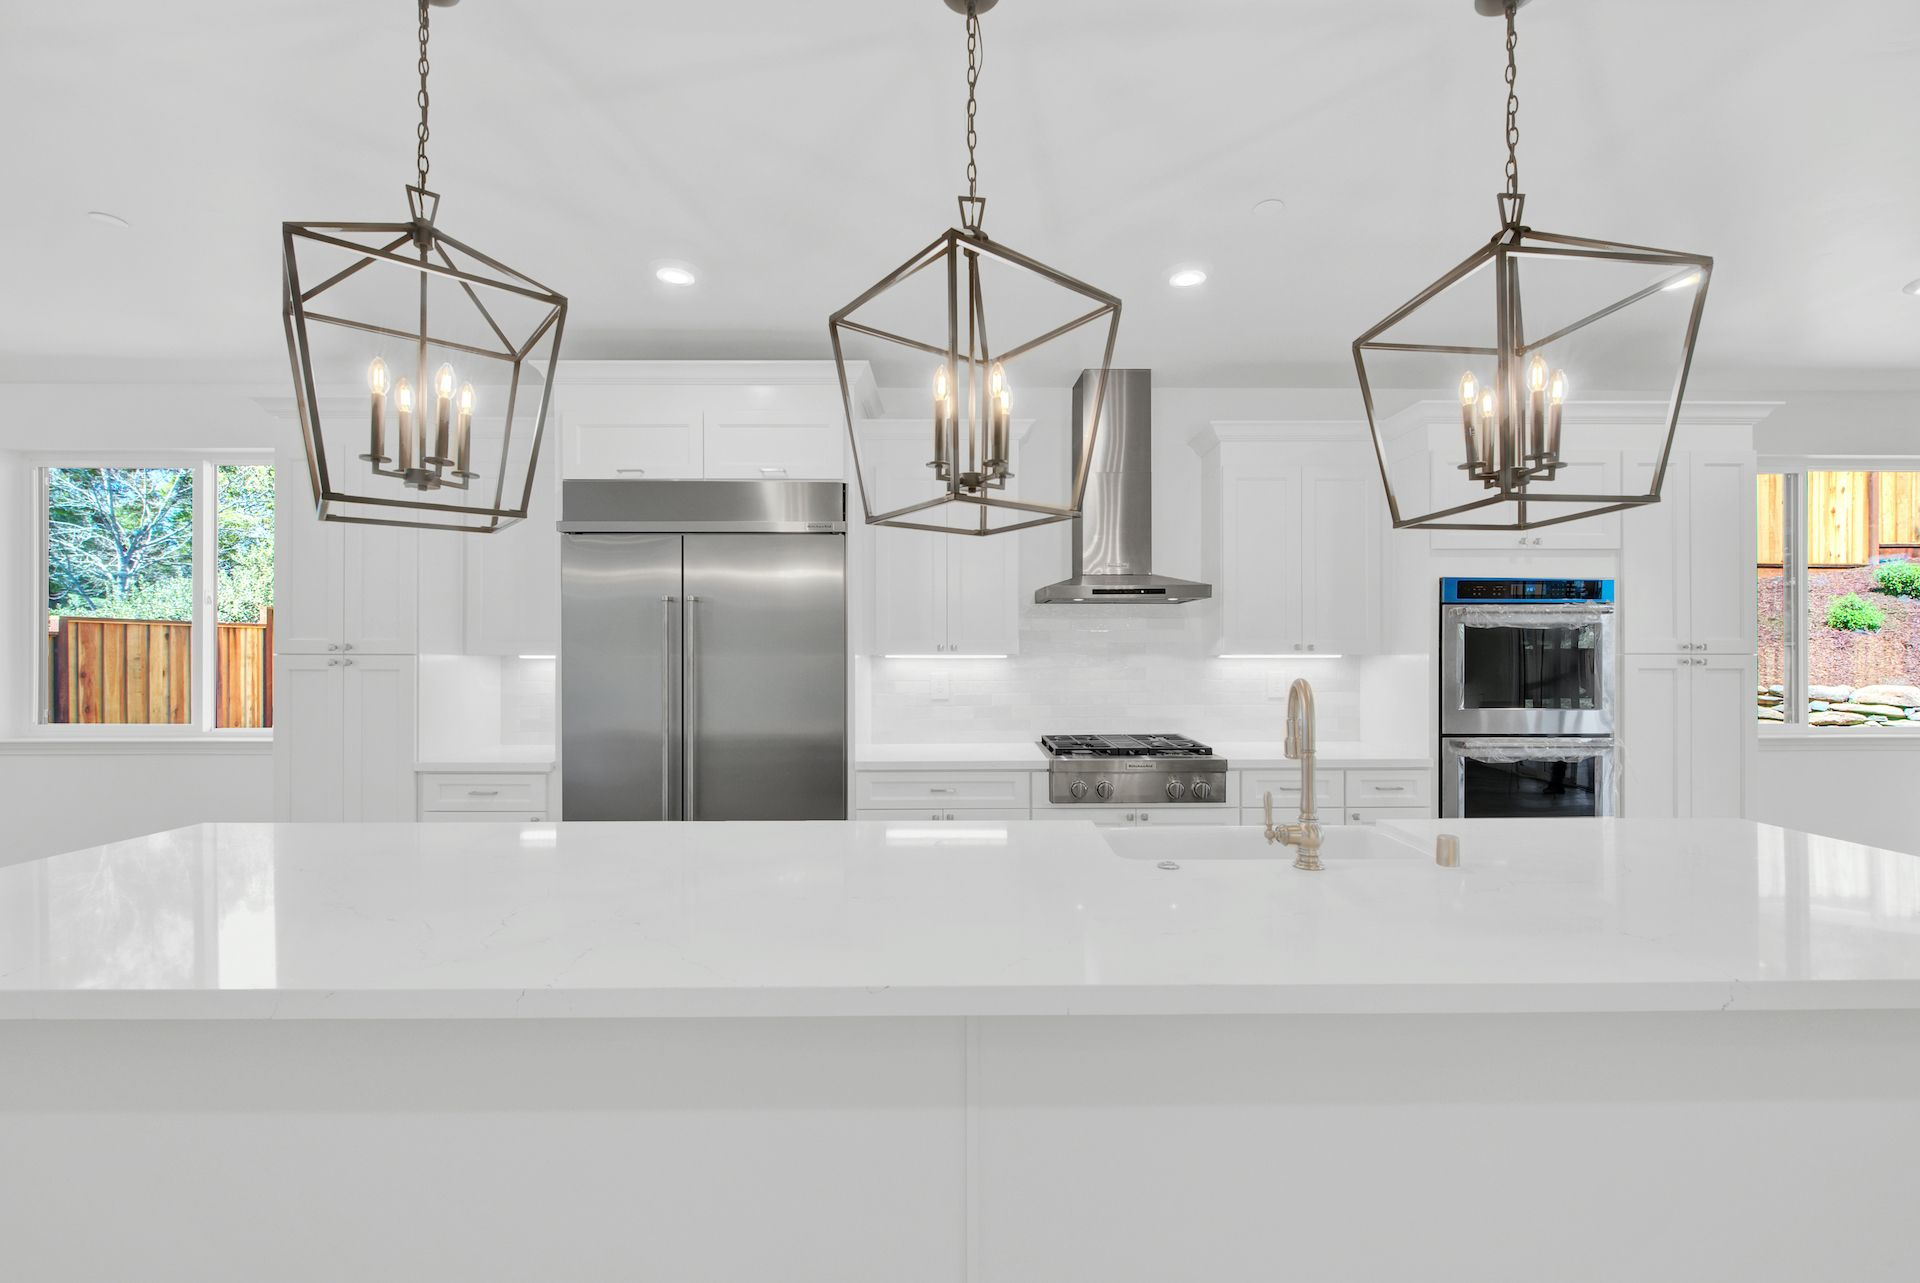 Kitchen featured in the 3675 Wyndemere Cir By Silvermark Luxury Homes in Santa Rosa, CA